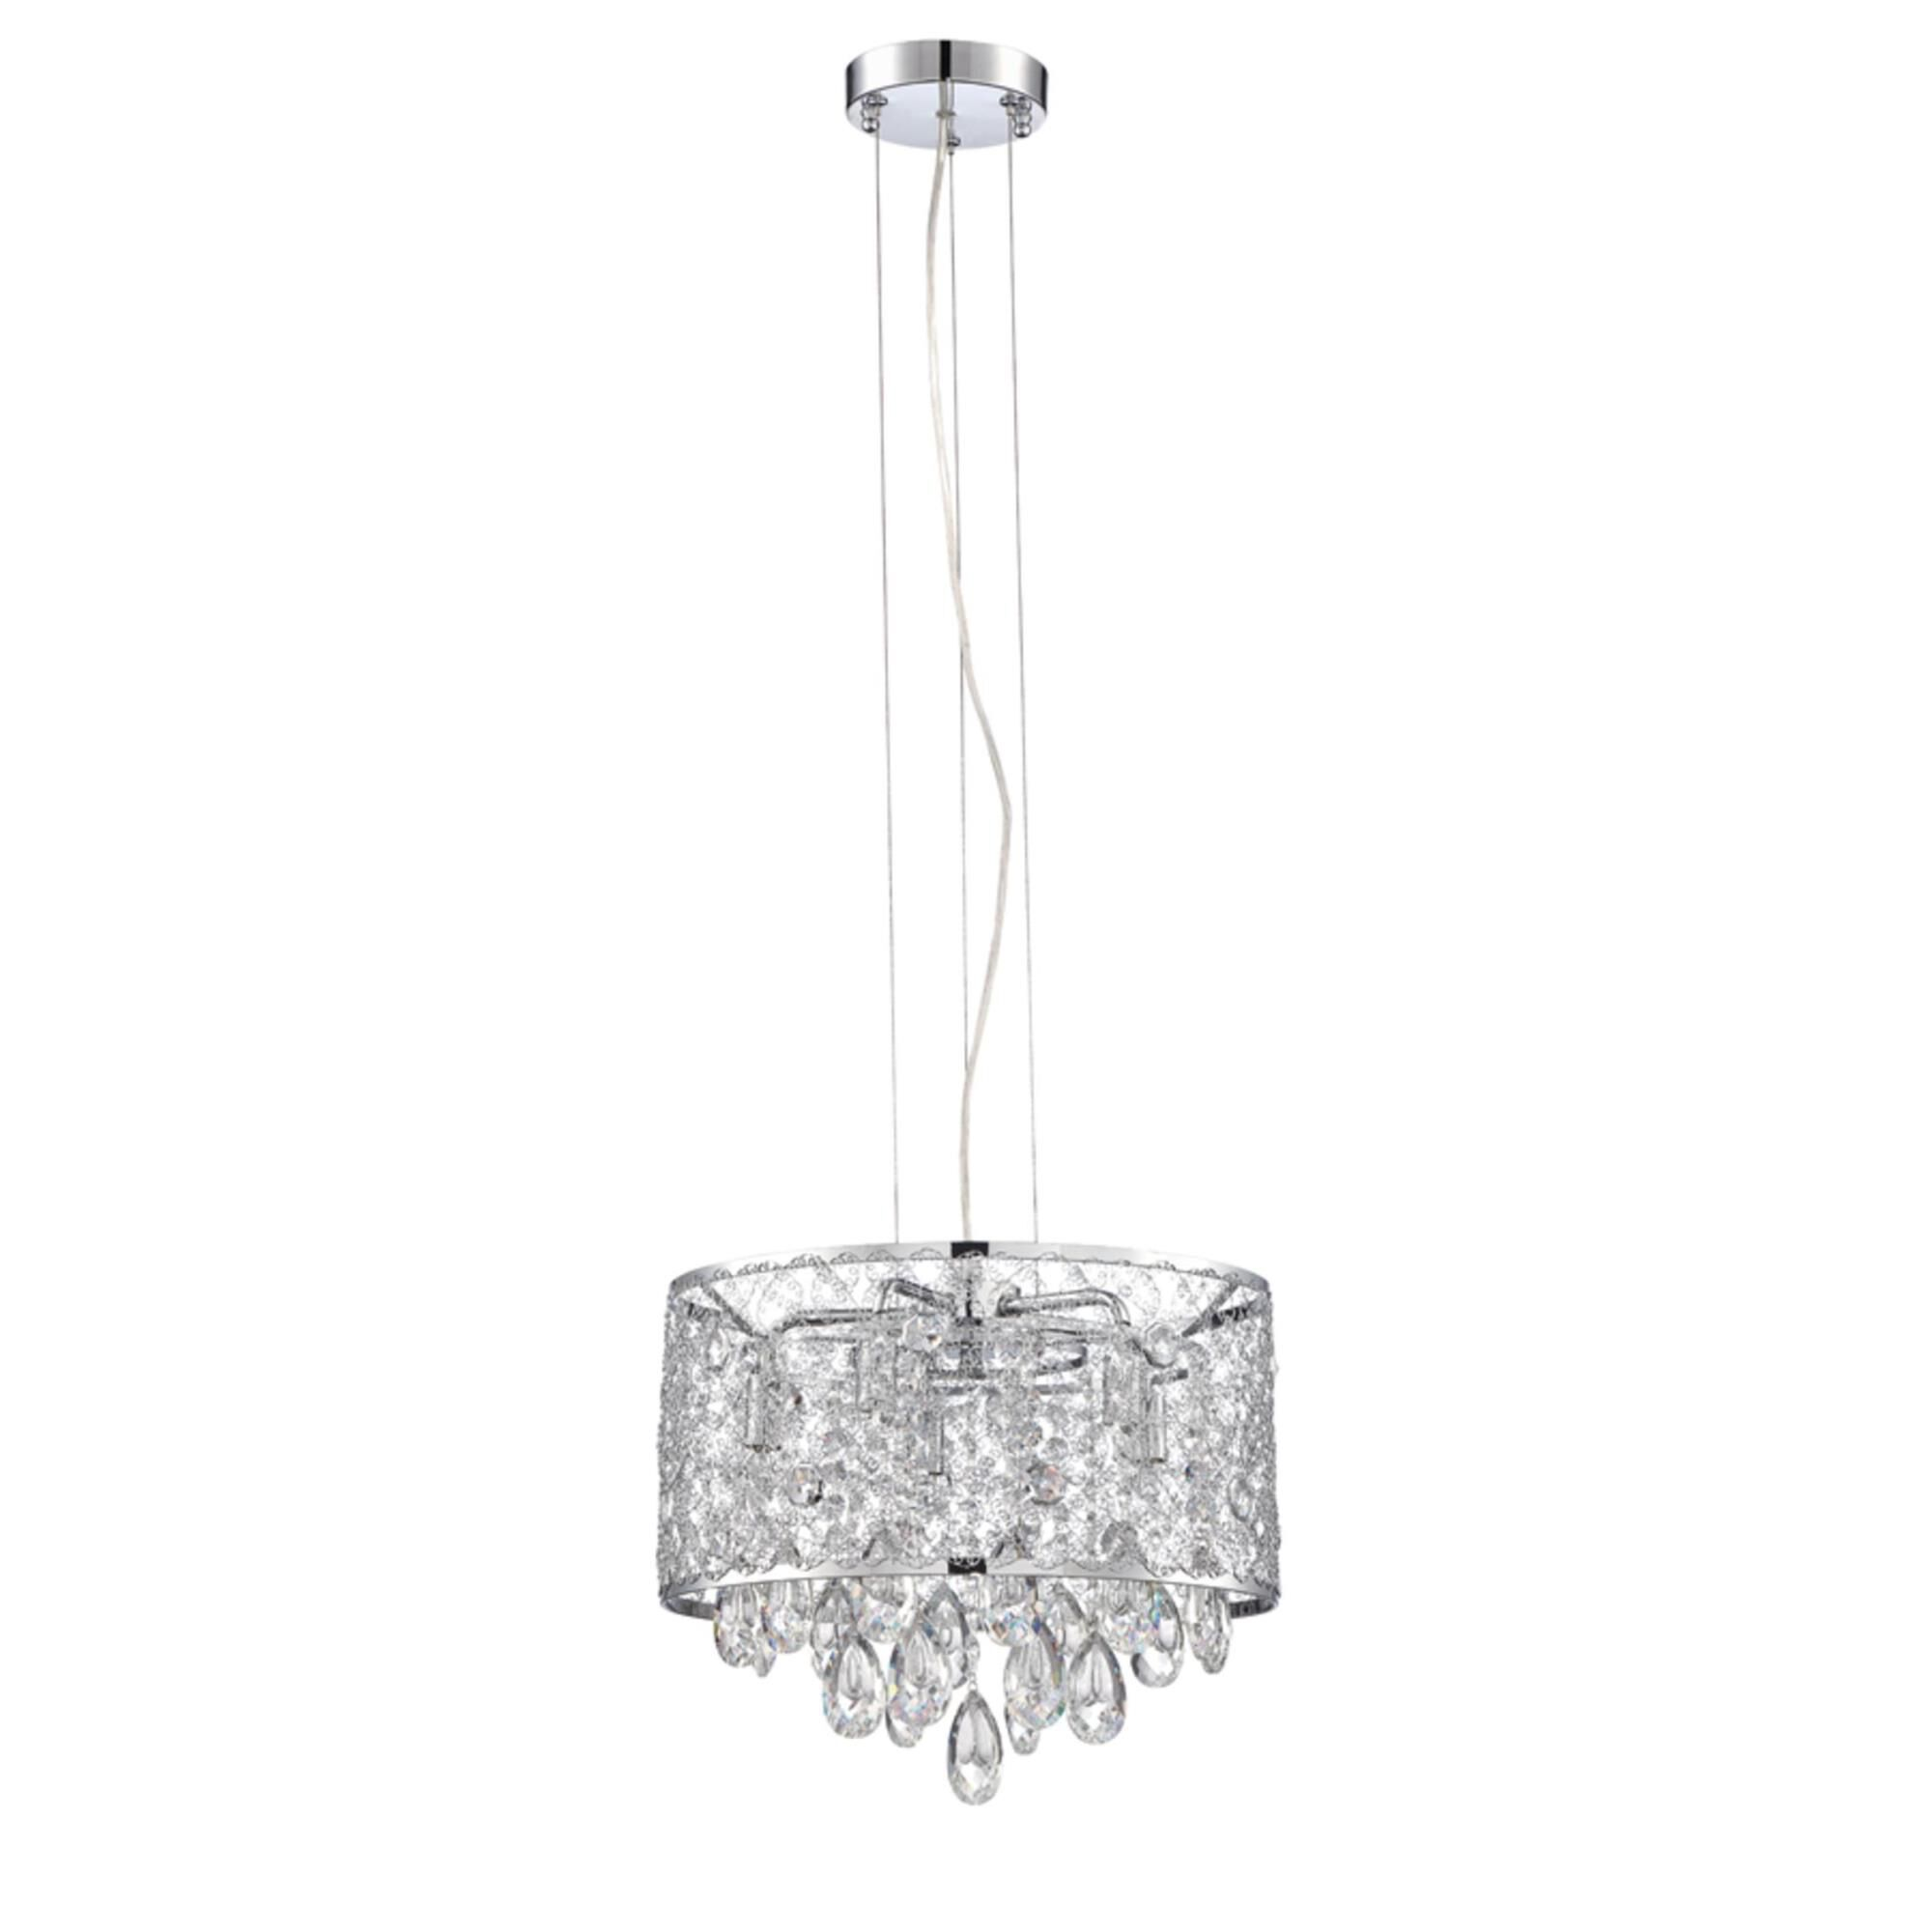 Kendal Lighting Solaro 14 Inch Large Pendant Solaro Pf40 5lcpe Ch Modern Contemporary Shefinds